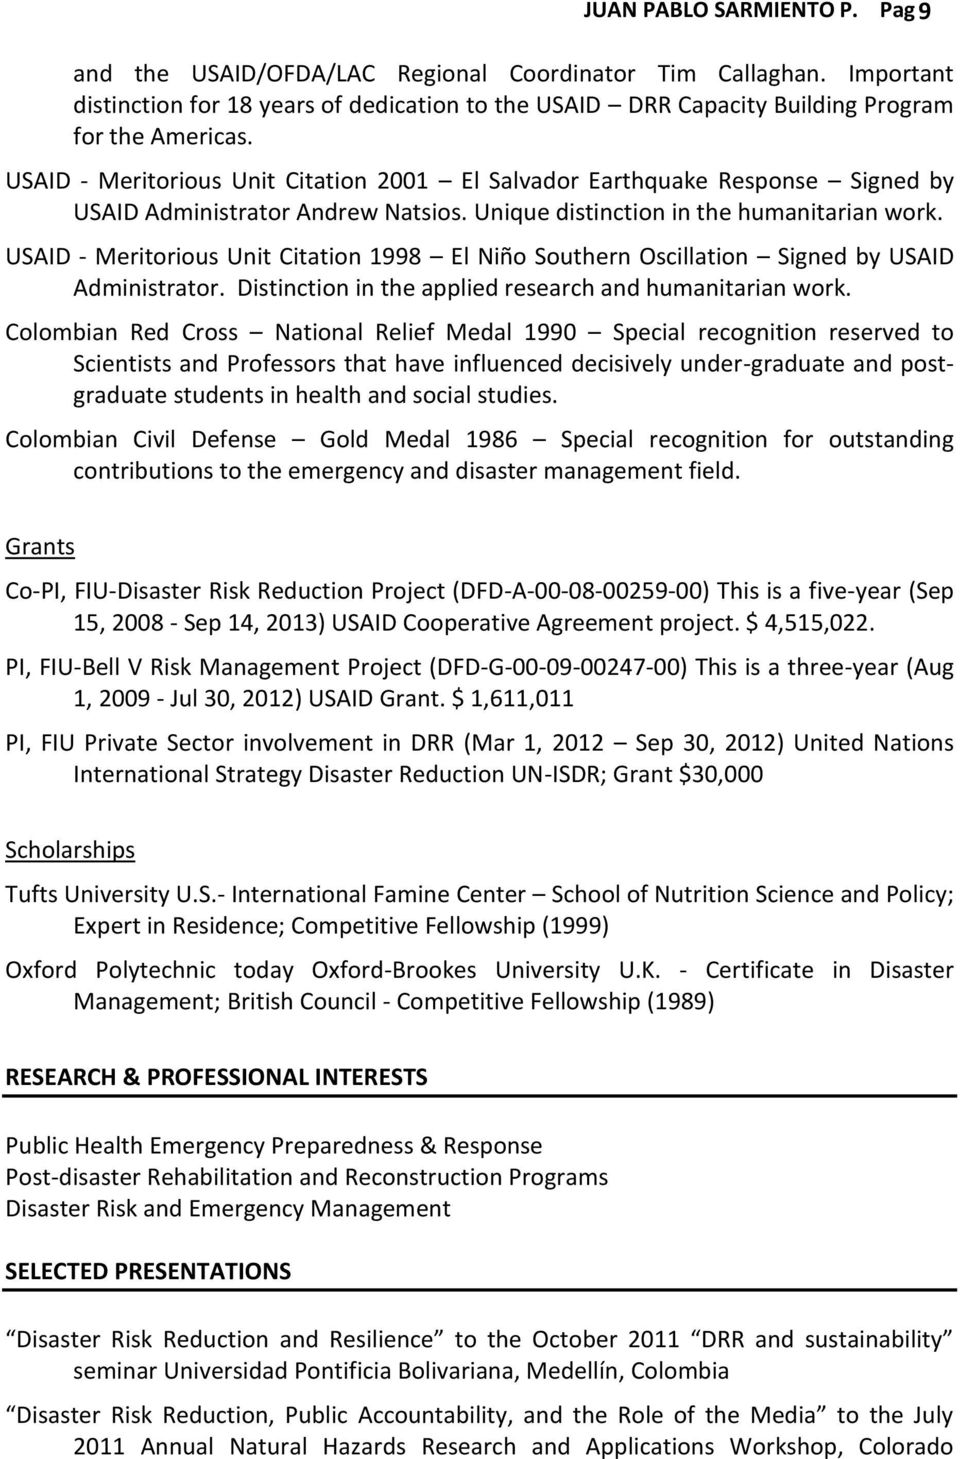 USAID - Meritorious Unit Citation 1998 El Niño Southern Oscillation Signed by USAID Administrator. Distinction in the applied research and humanitarian work.